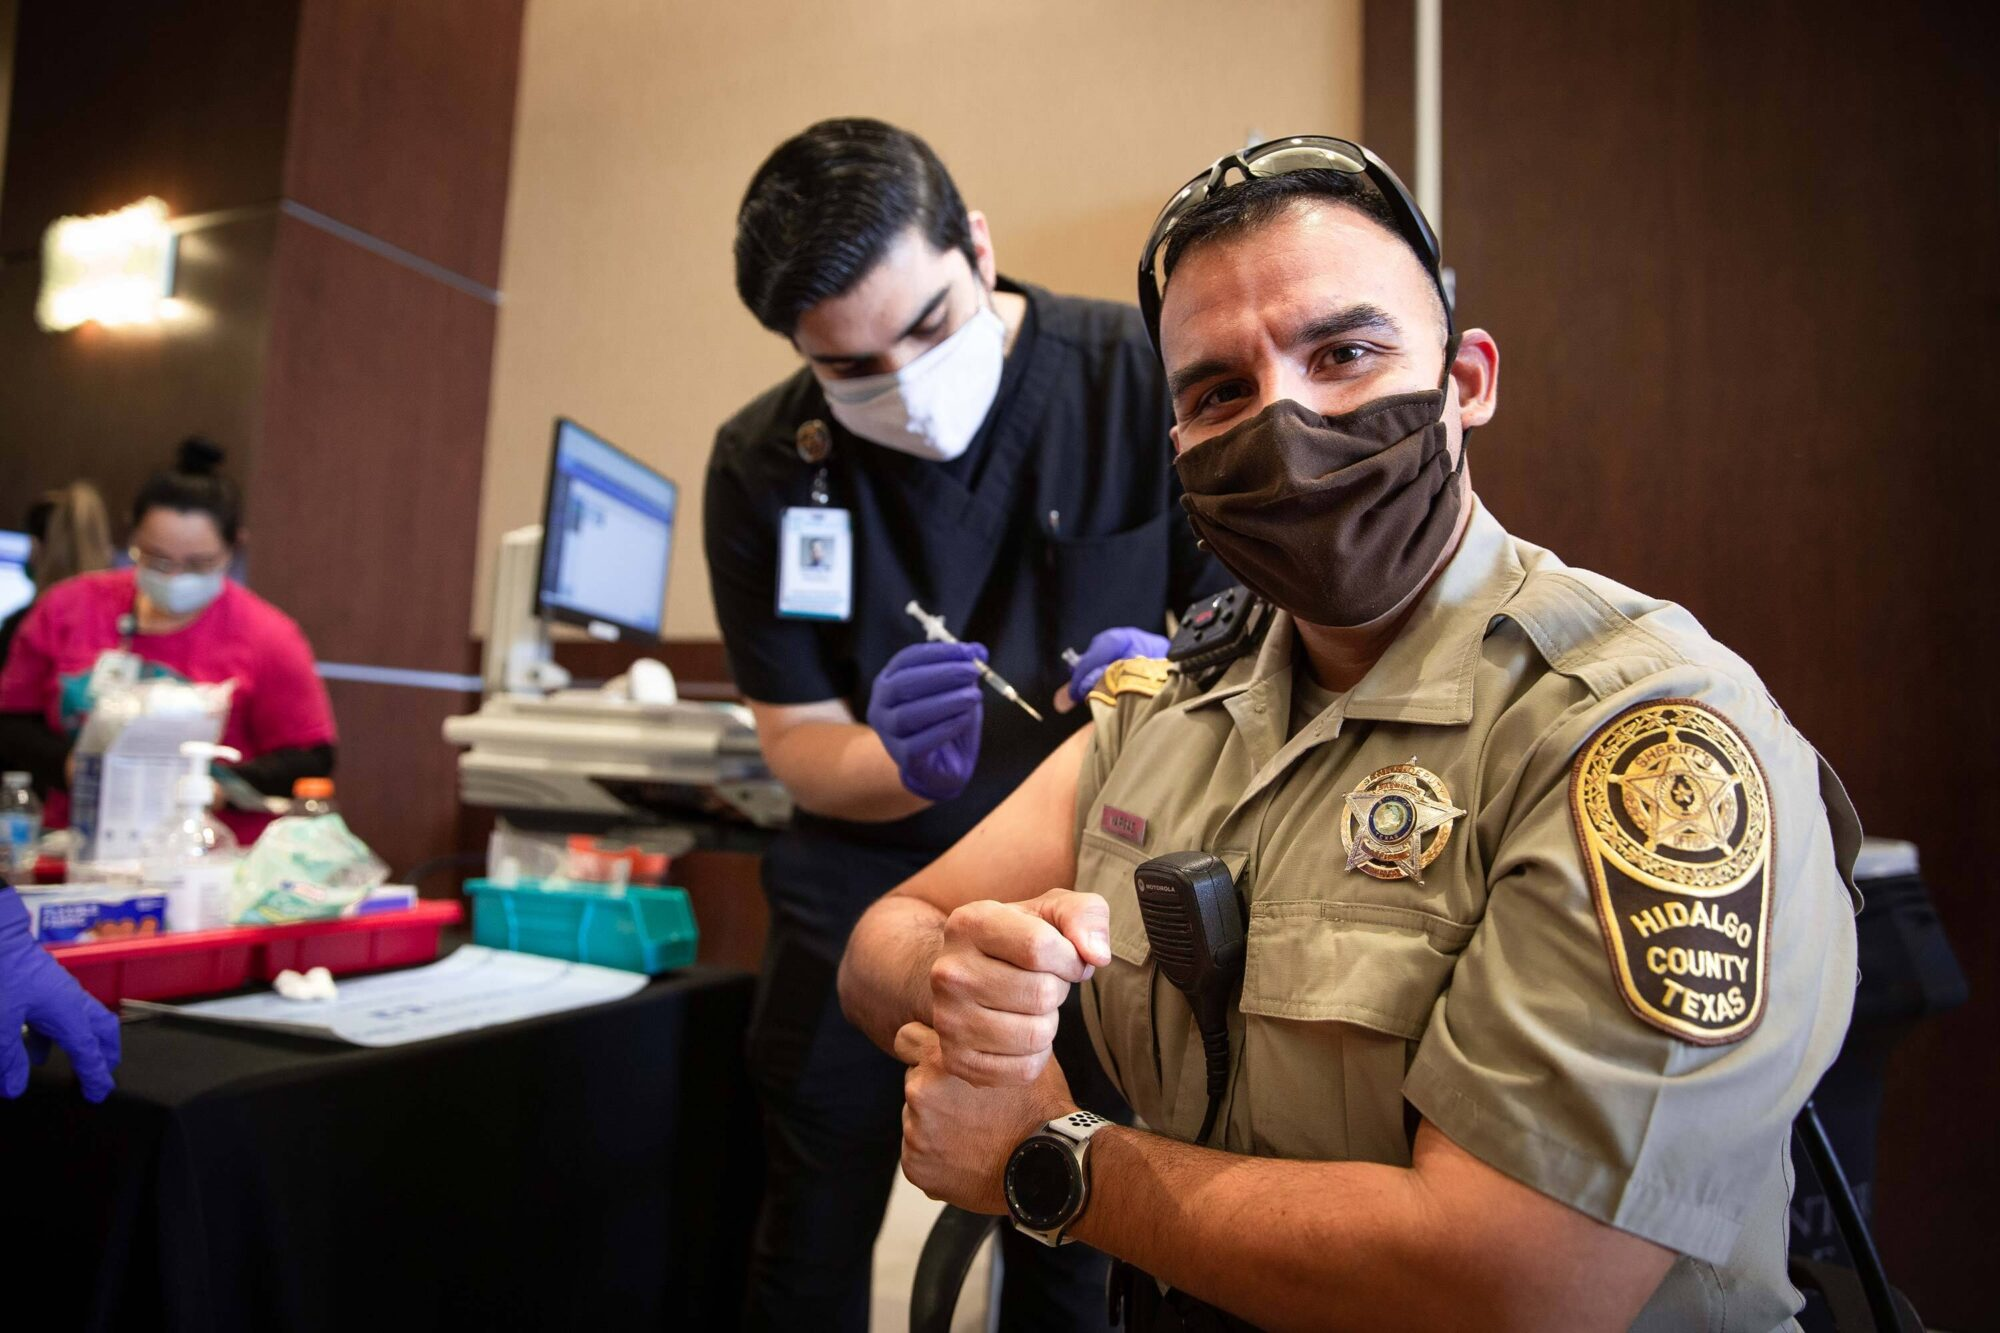 Senior Patrol Deputy Tony Vargas of Hidalgo County Sheriff's Office receiving a vaccination at the conference center on Saturday.